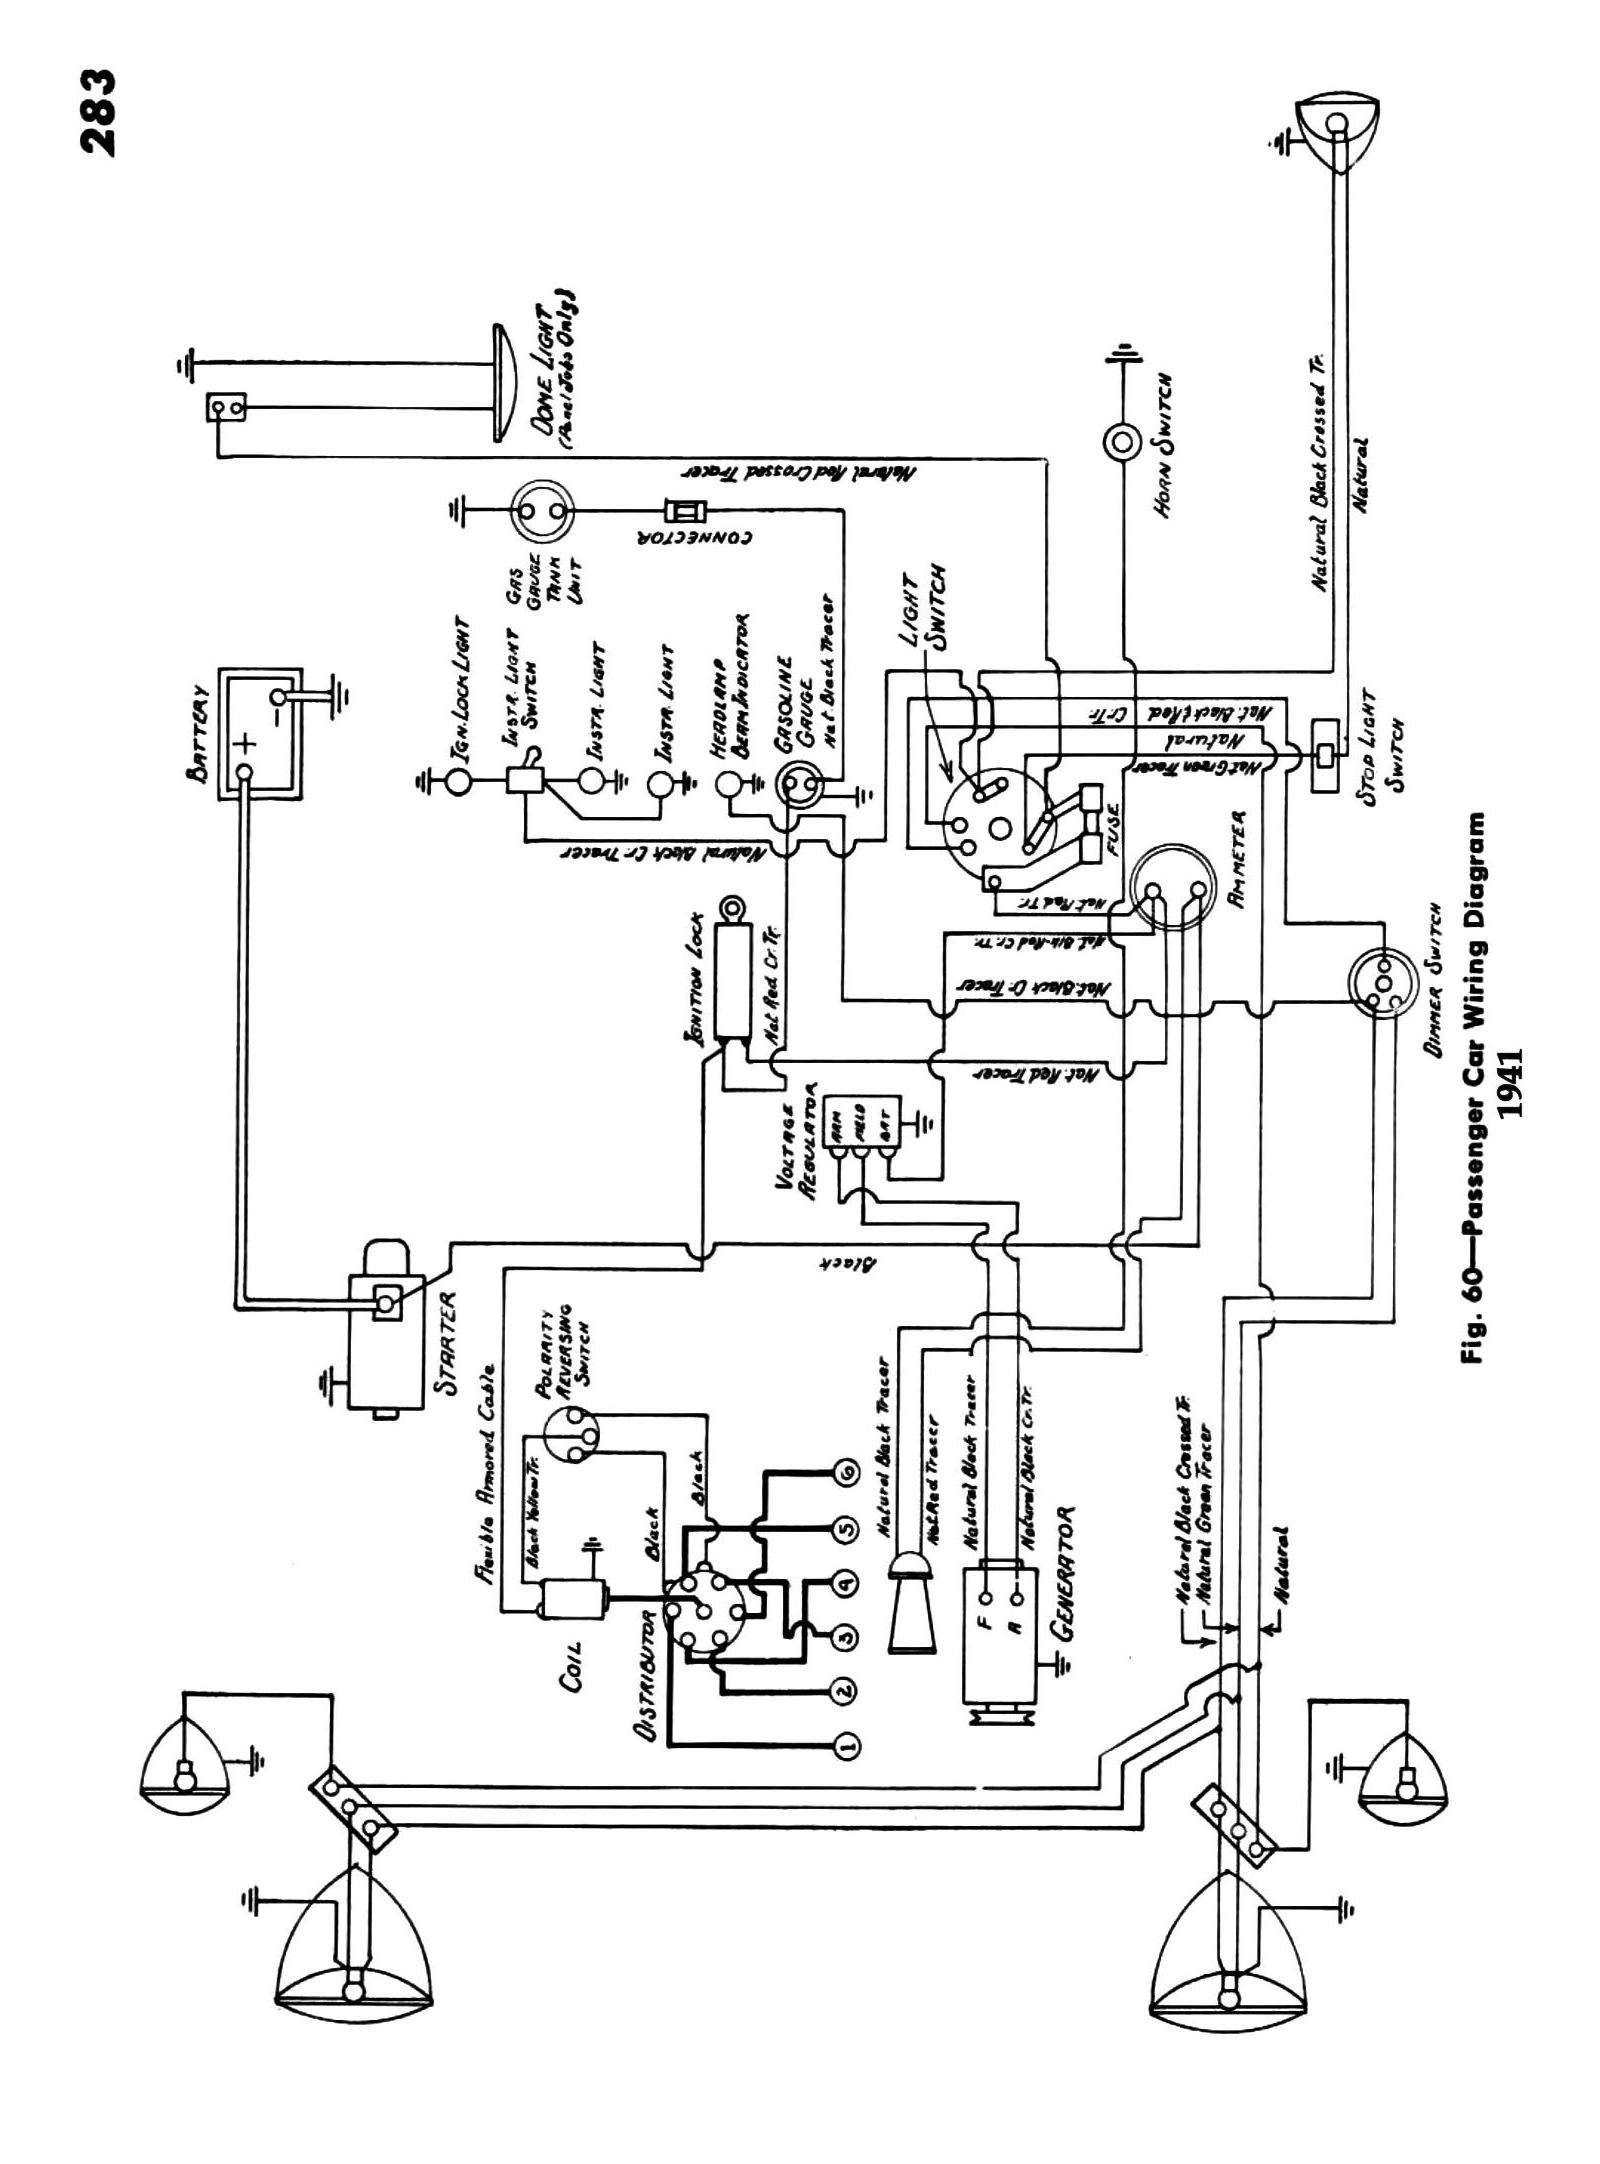 hight resolution of 6 volt positive ground electrical system wiring diagram wiring library john deere 345 schematic john deere 6 volt positive ground wiring diagram